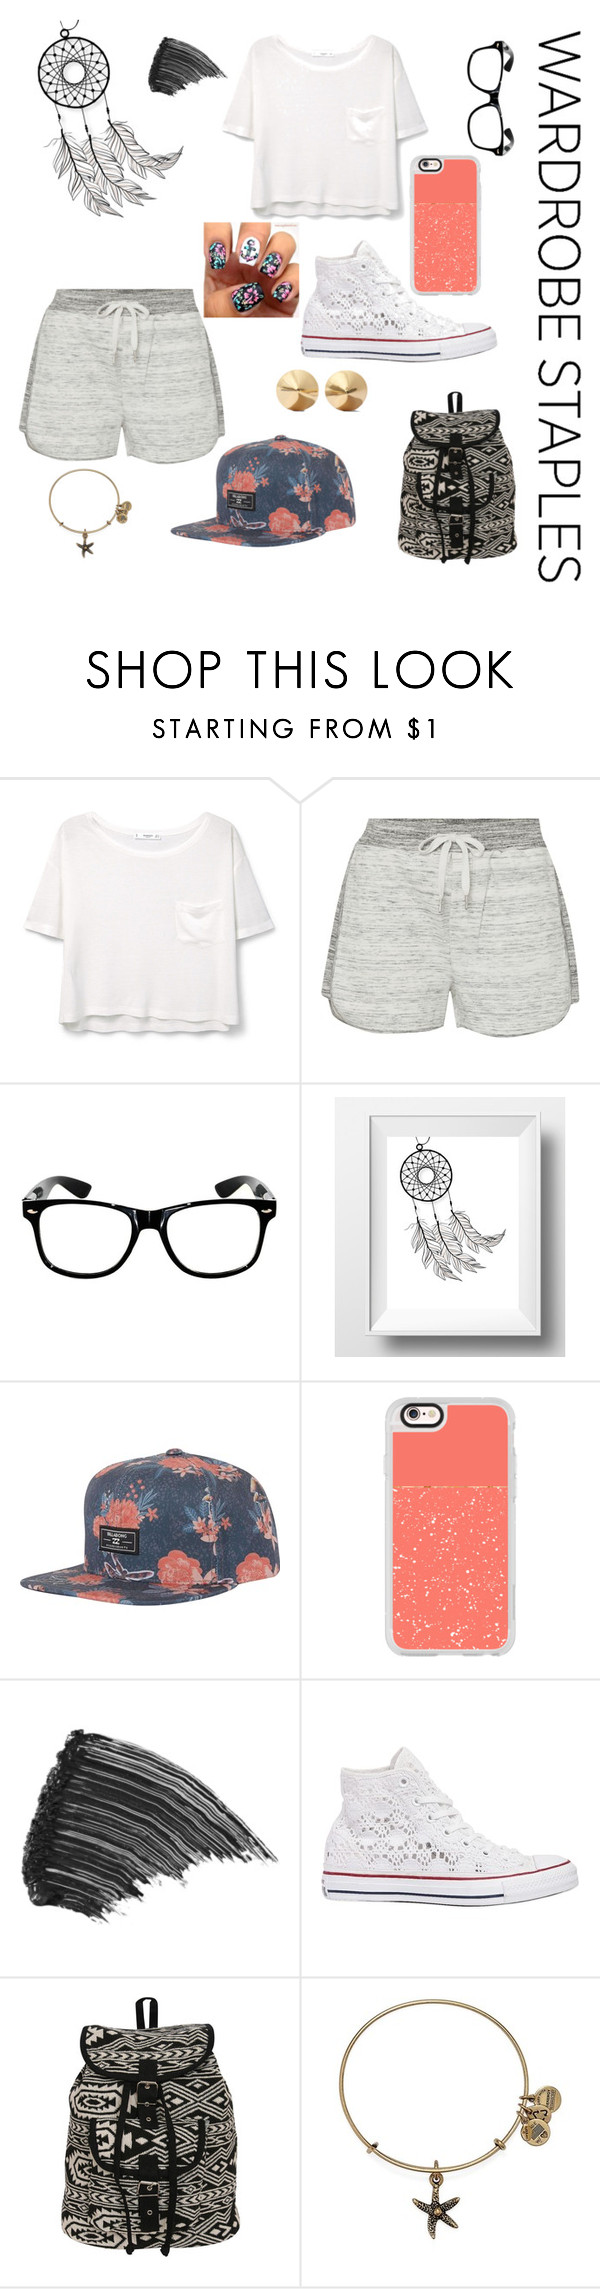 """""""Ready for anything"""" by elleebird ❤ liked on Polyvore featuring MANGO, Calvin Klein, Billabong, Casetify, LashFood, Converse, Pilot, Alex and Ani, Eddie Borgo and WardrobeStaples"""